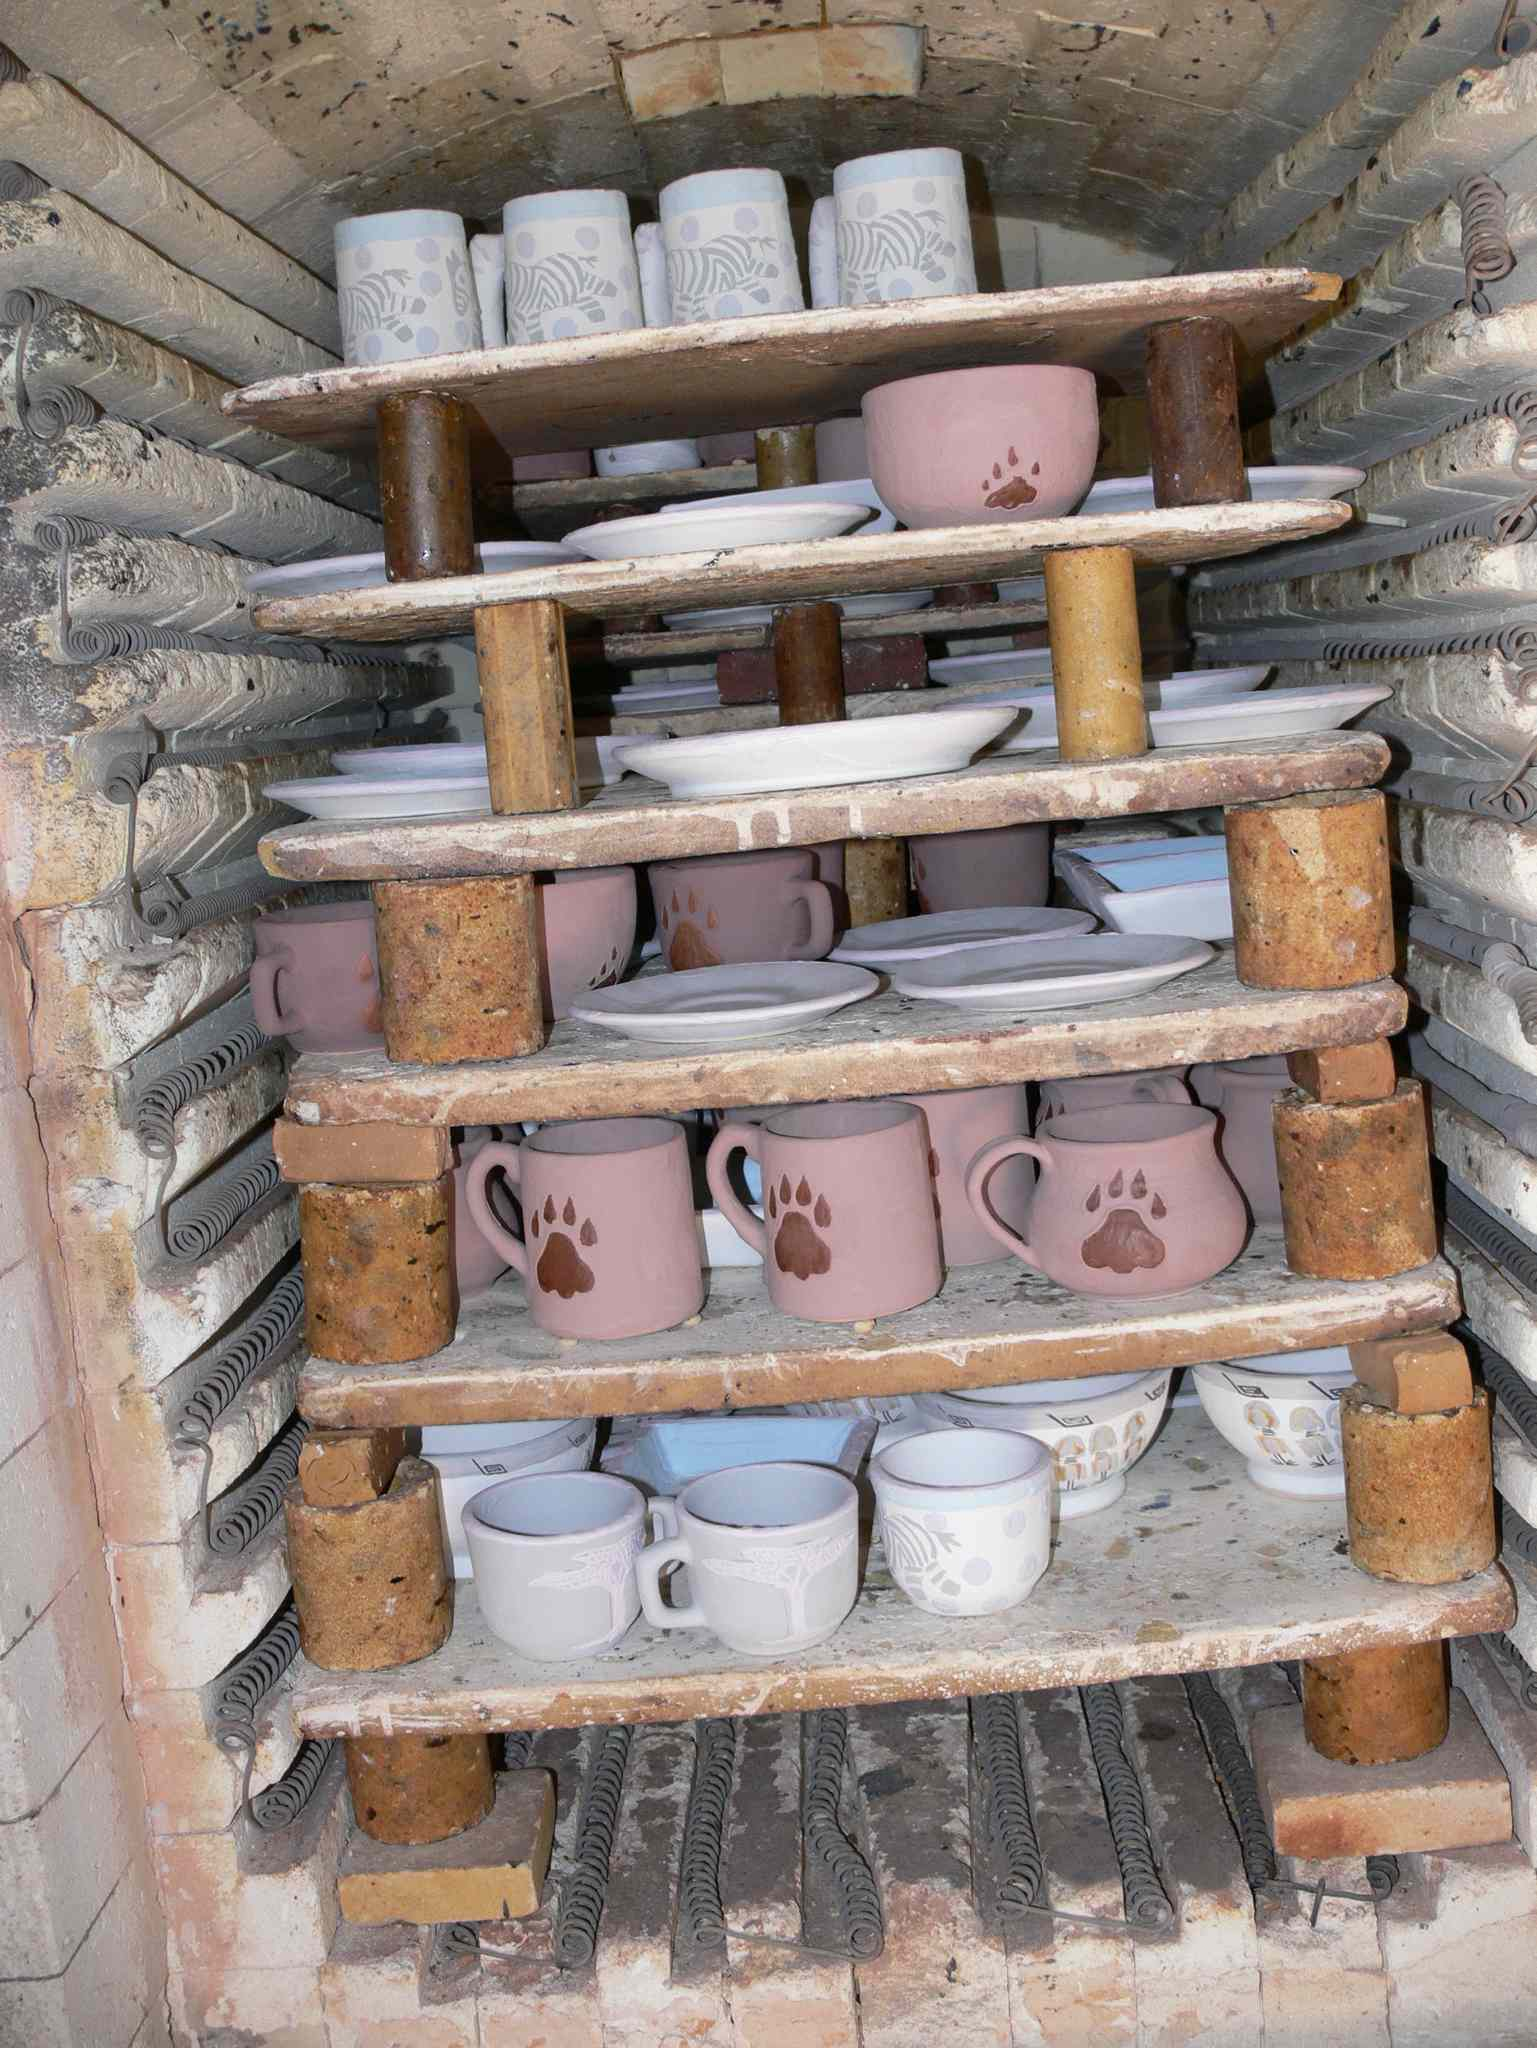 Ceramics in the kiln at Kazuri.